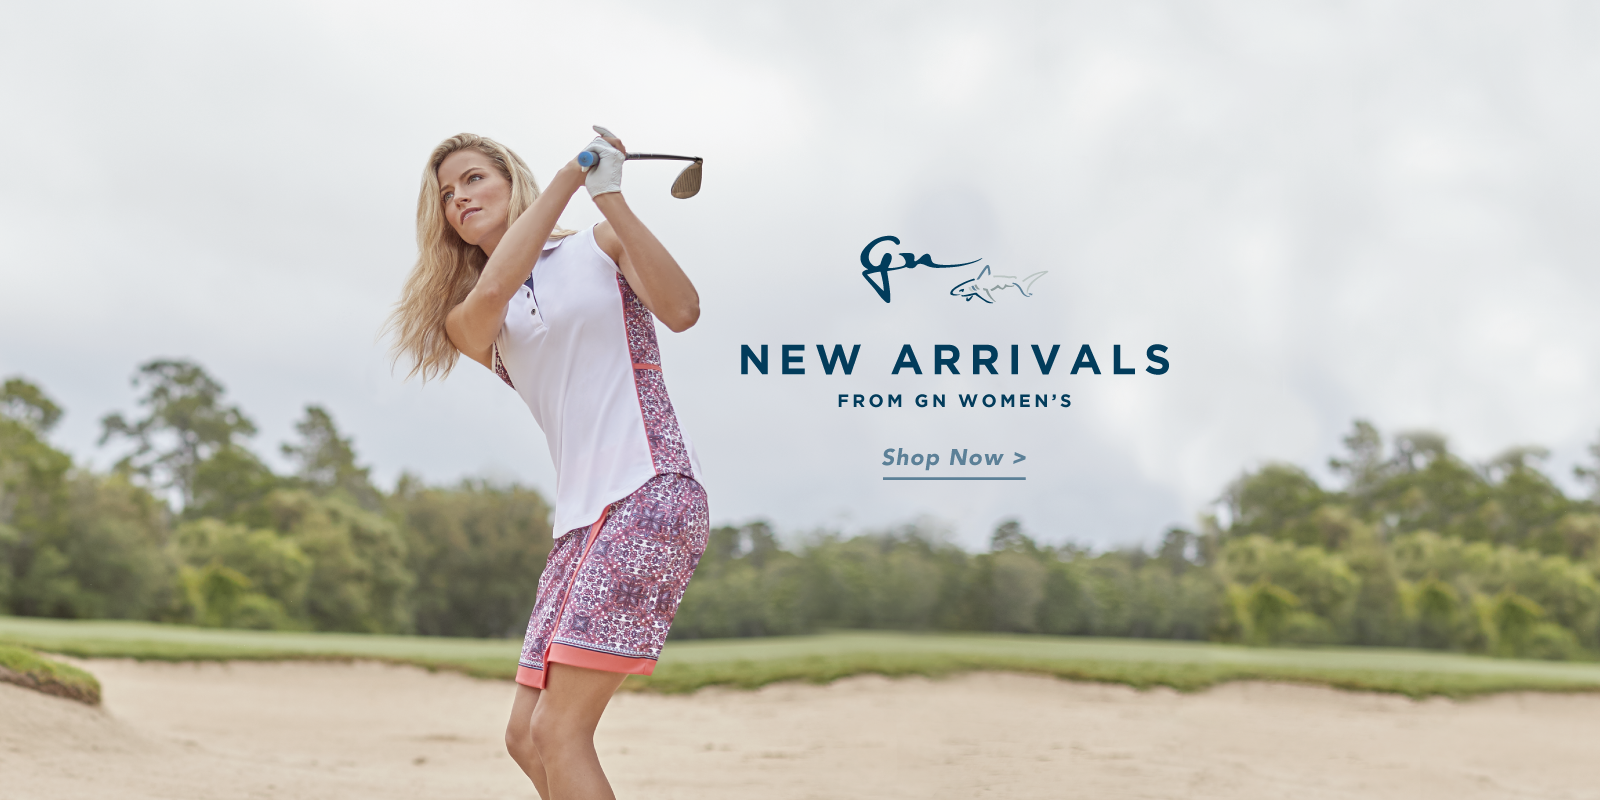 New Arrivals from GN Women's Shop Now